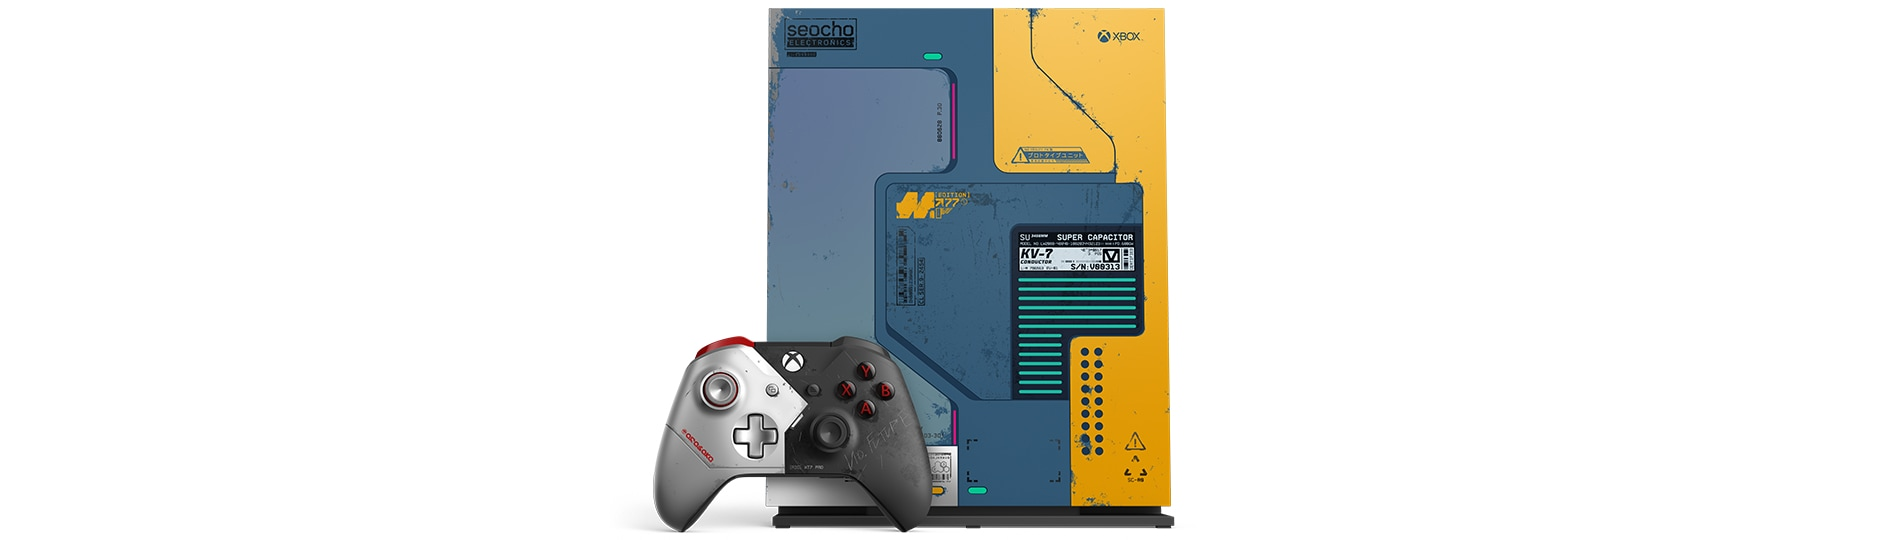 Xbox One X Cyberpunk 2077 Limited Edition console and controller